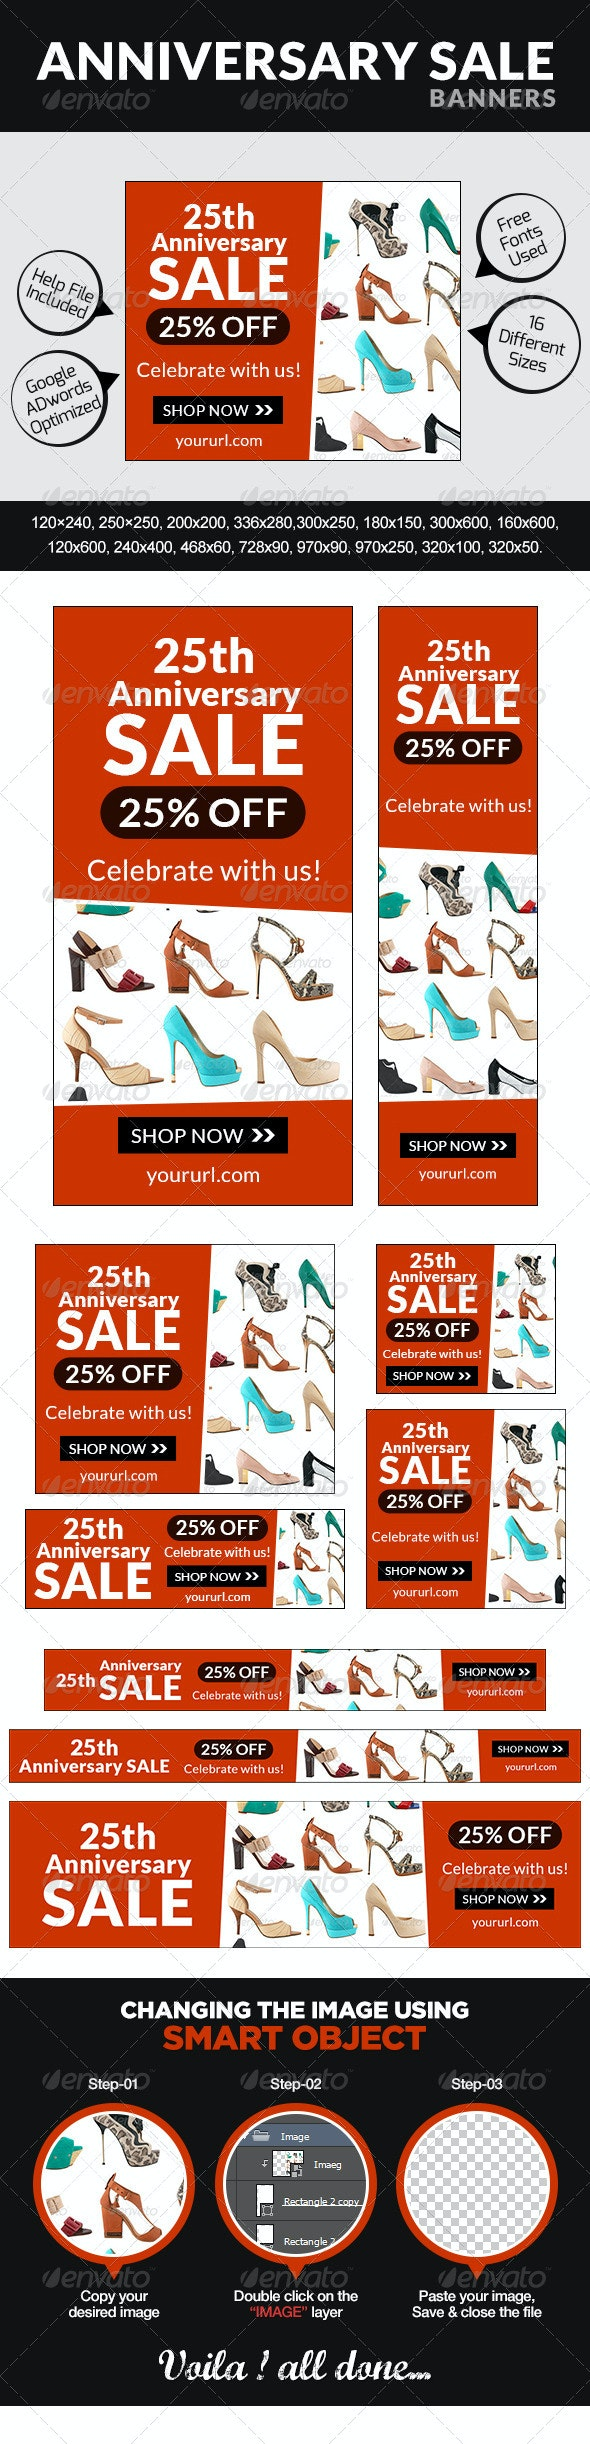 Anniversary Sale Banners - Banners & Ads Web Elements